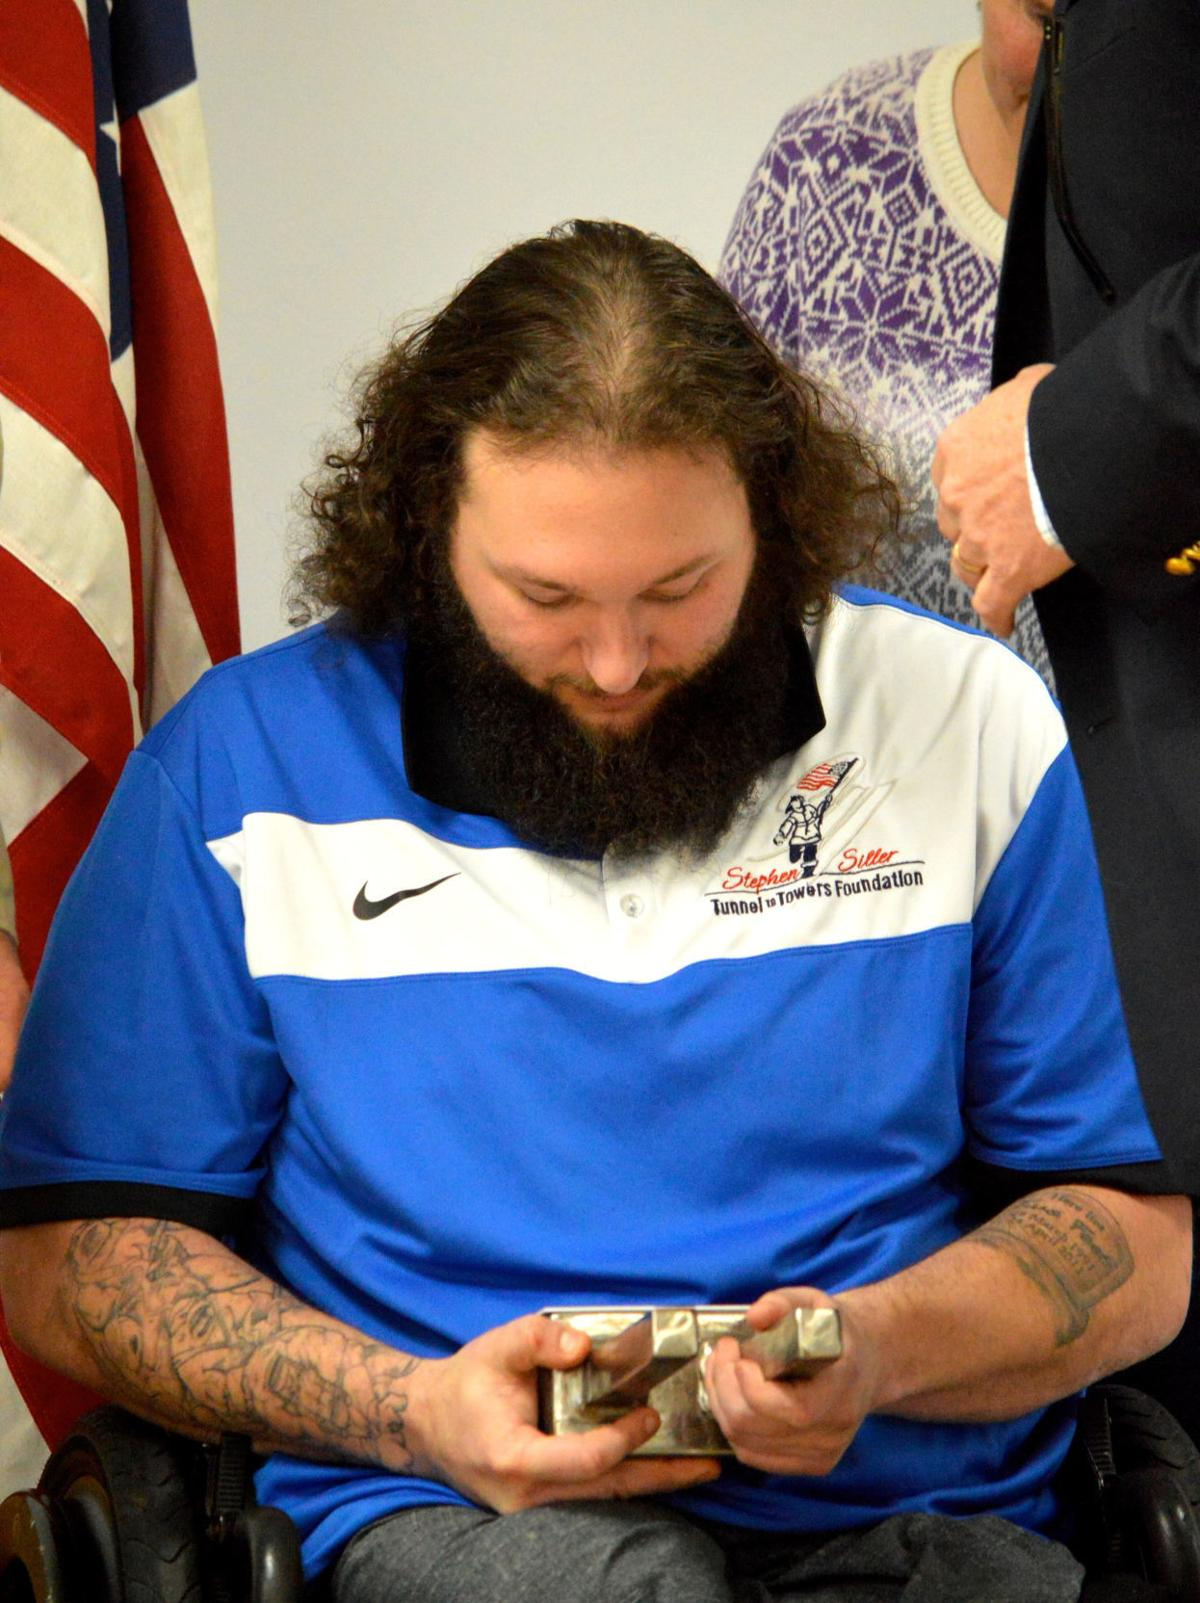 Cpl. Clark Cavalier receives new home from the Stephen Siller Tunnel to Towers Foundation